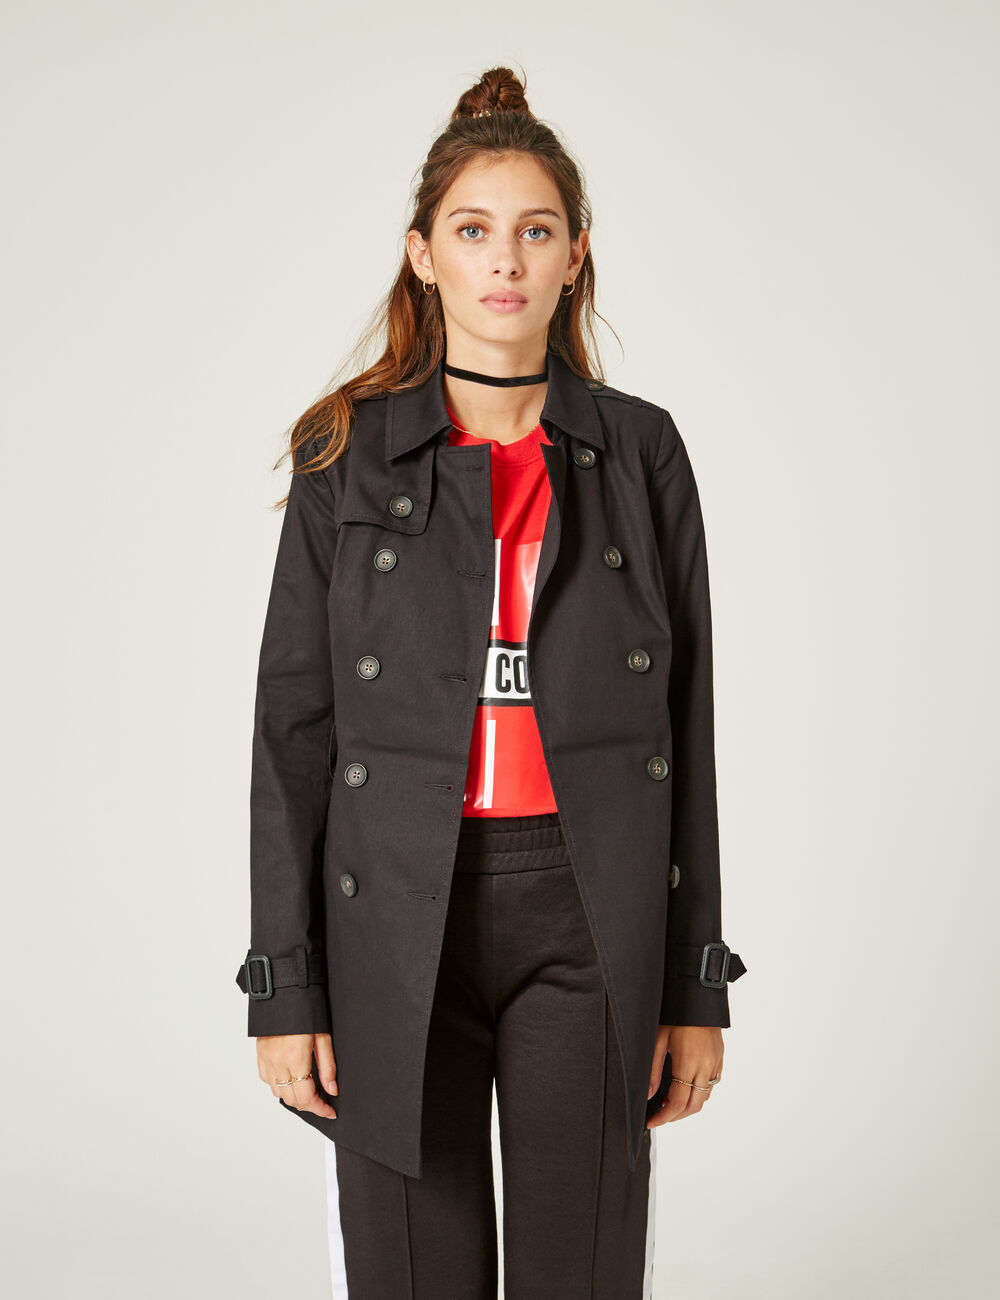 Find great deals on eBay for trench vest. Shop with confidence.